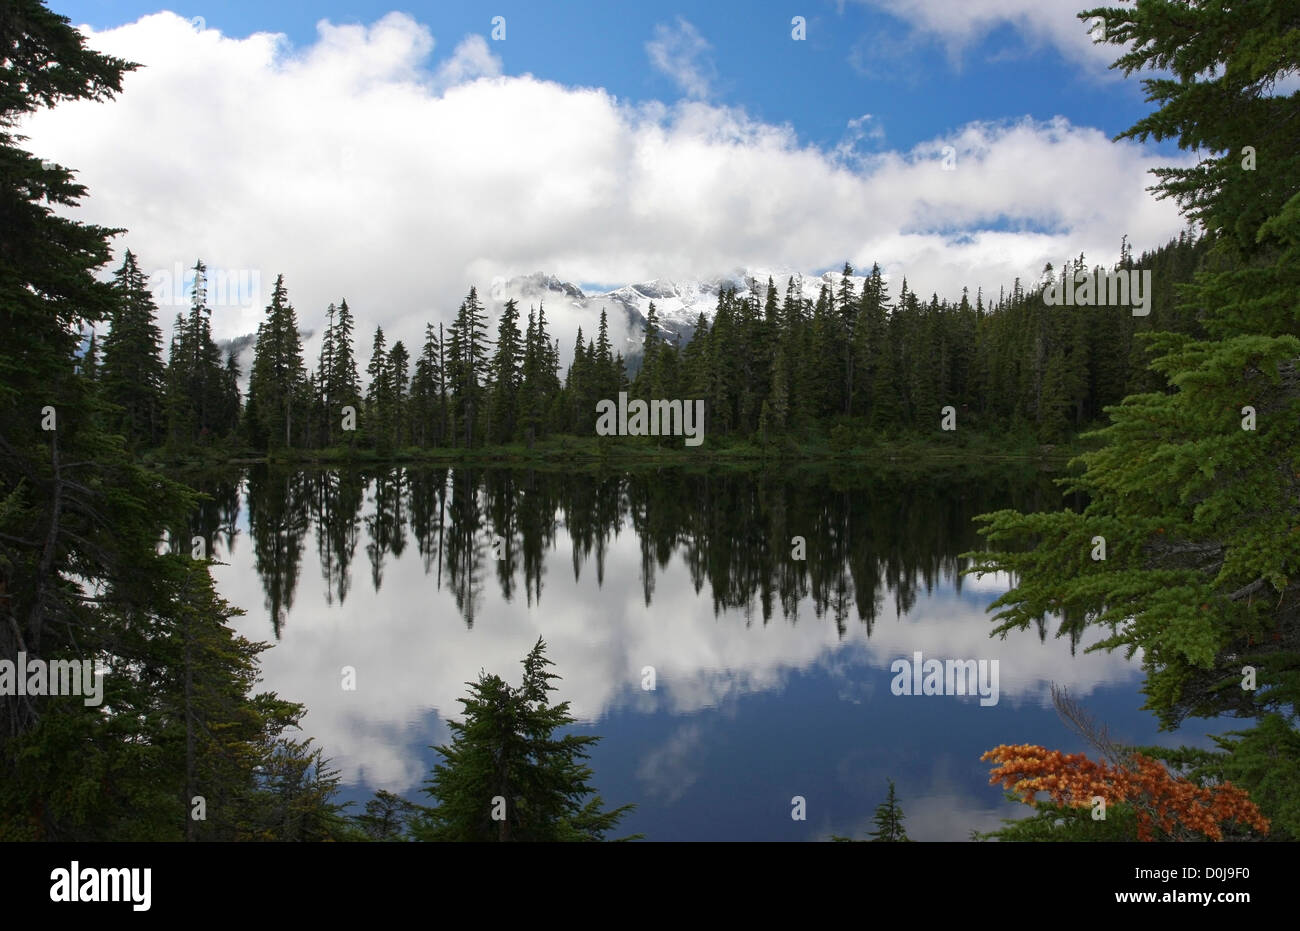 Kwai Lake at the Forbidden Plateau, Strathcona Park, Vancouver Is. BC,Canada in September showing Strathcona Peaks - Stock Image